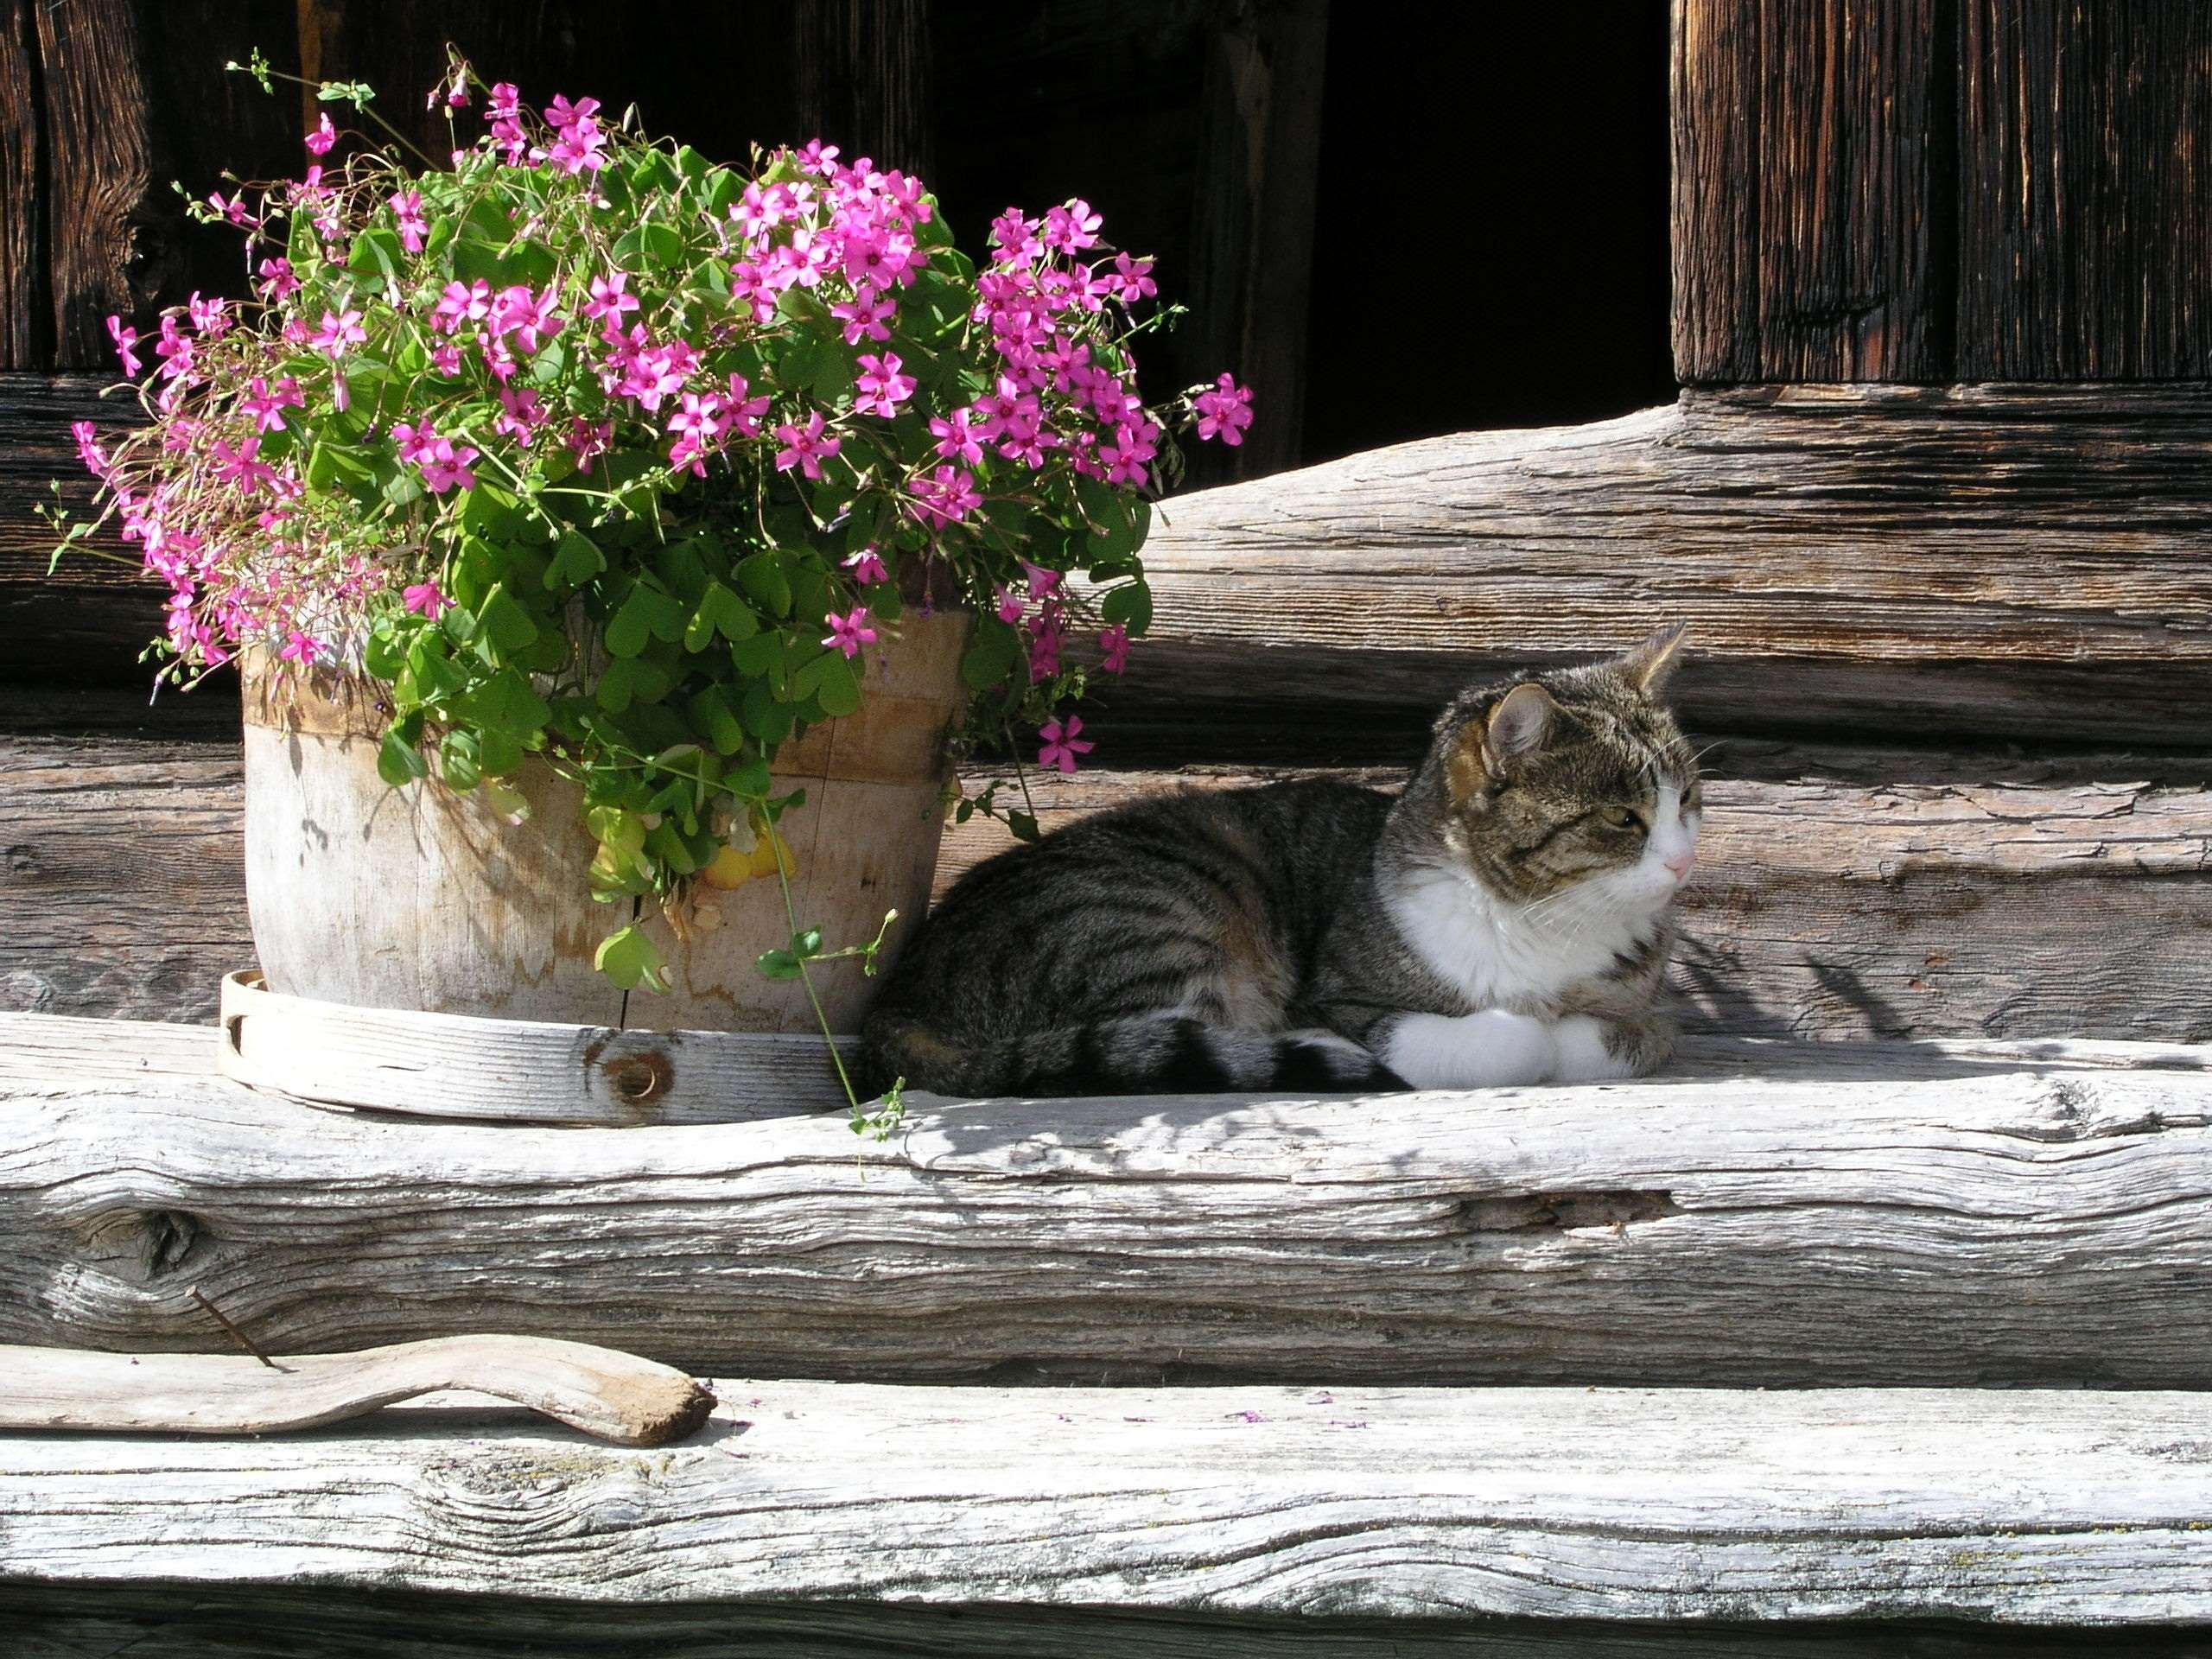 animal cat concerns dormant feline flowers in the